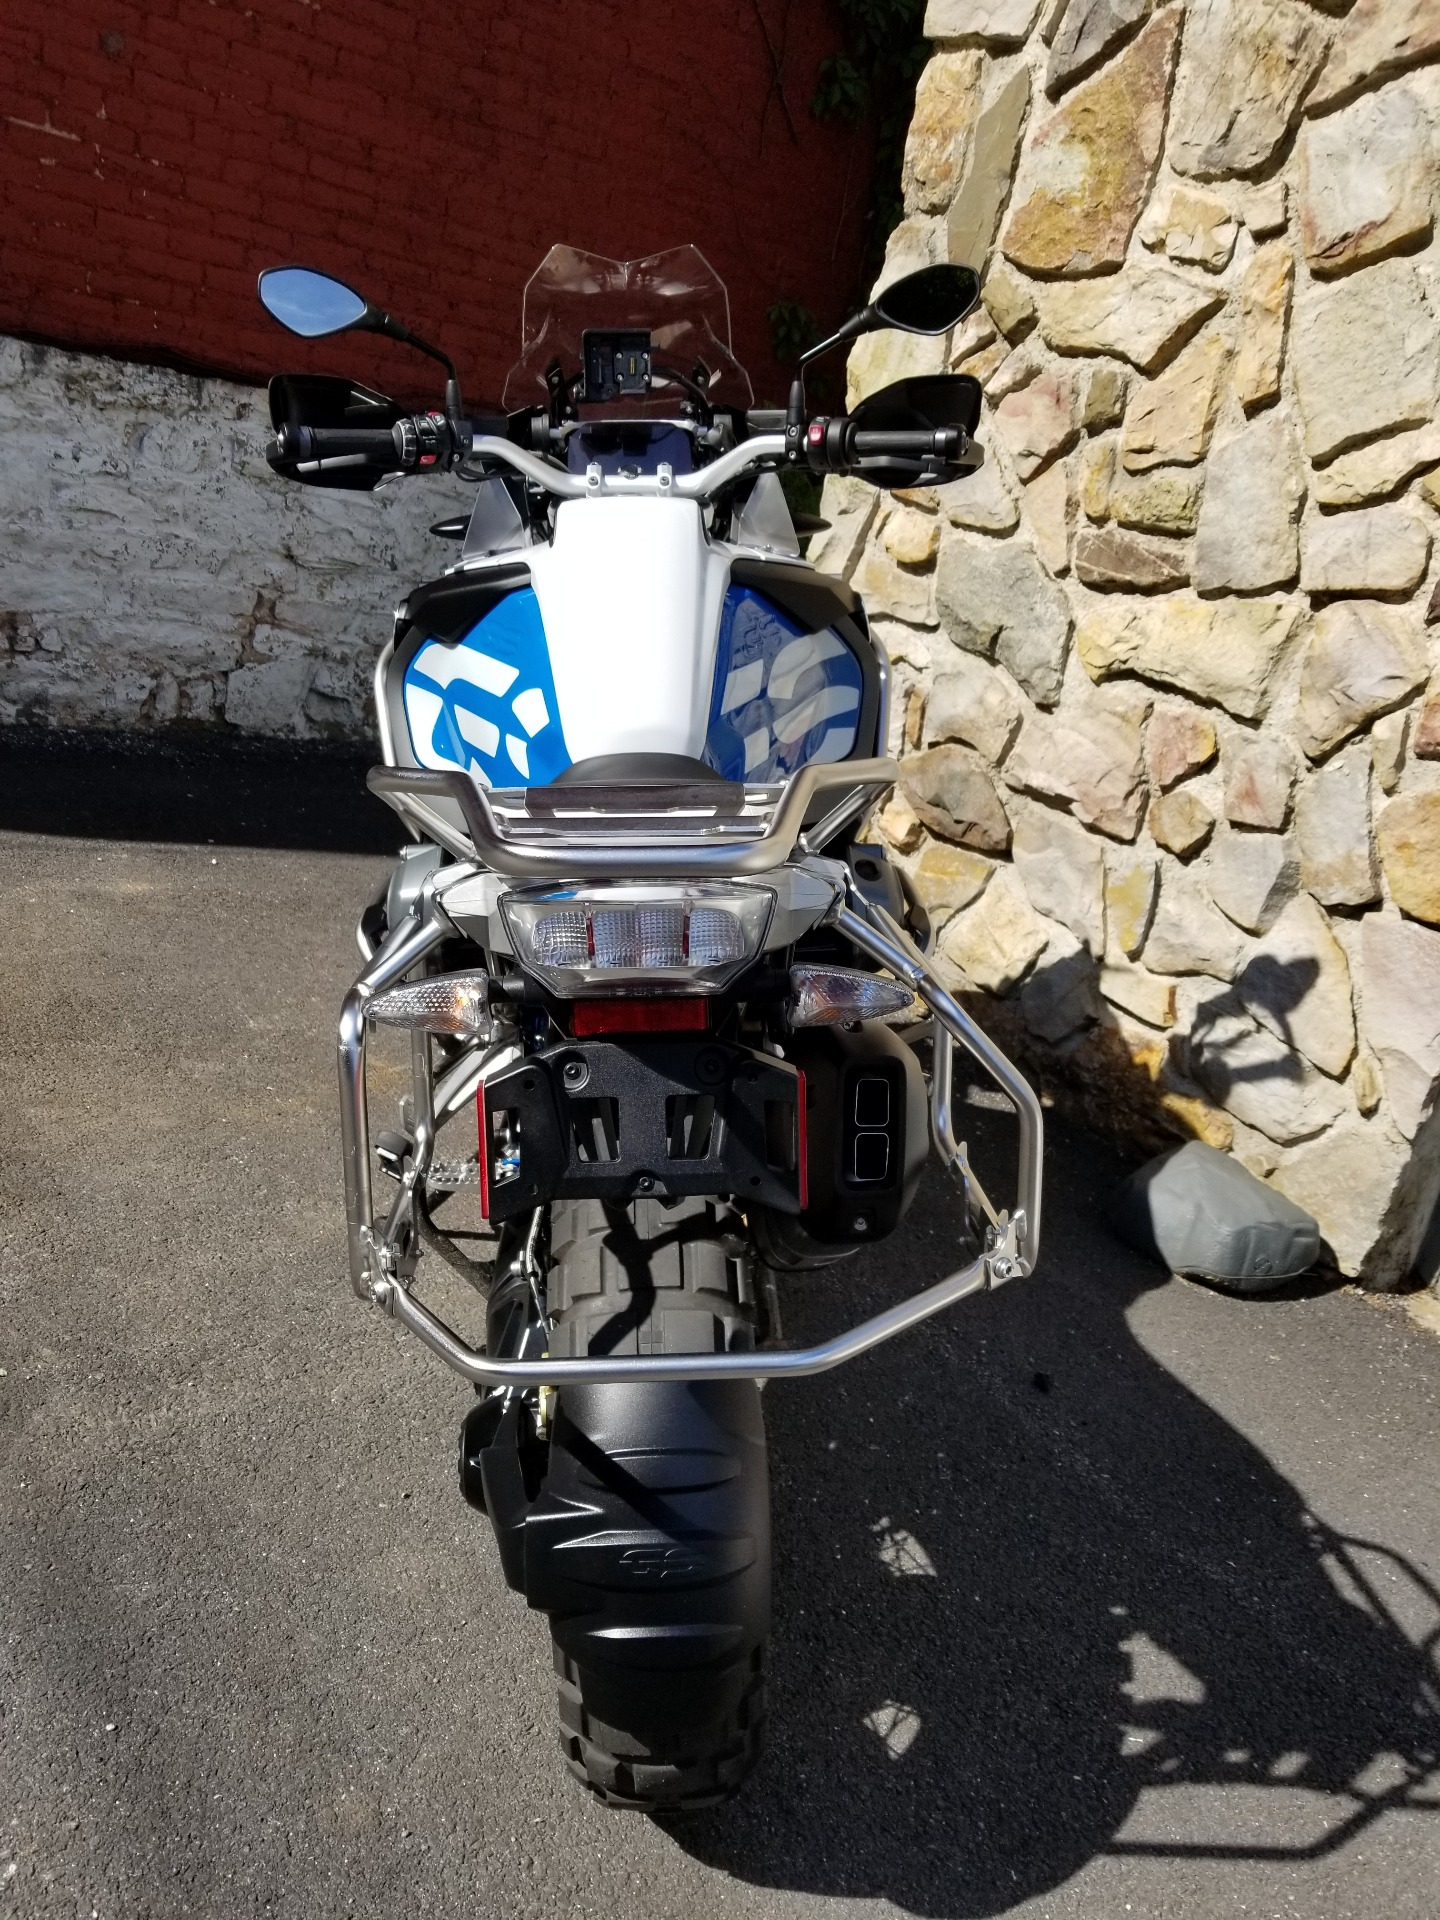 2018 BMW R 1200 GS Adventure in Port Clinton, Pennsylvania - Photo 4